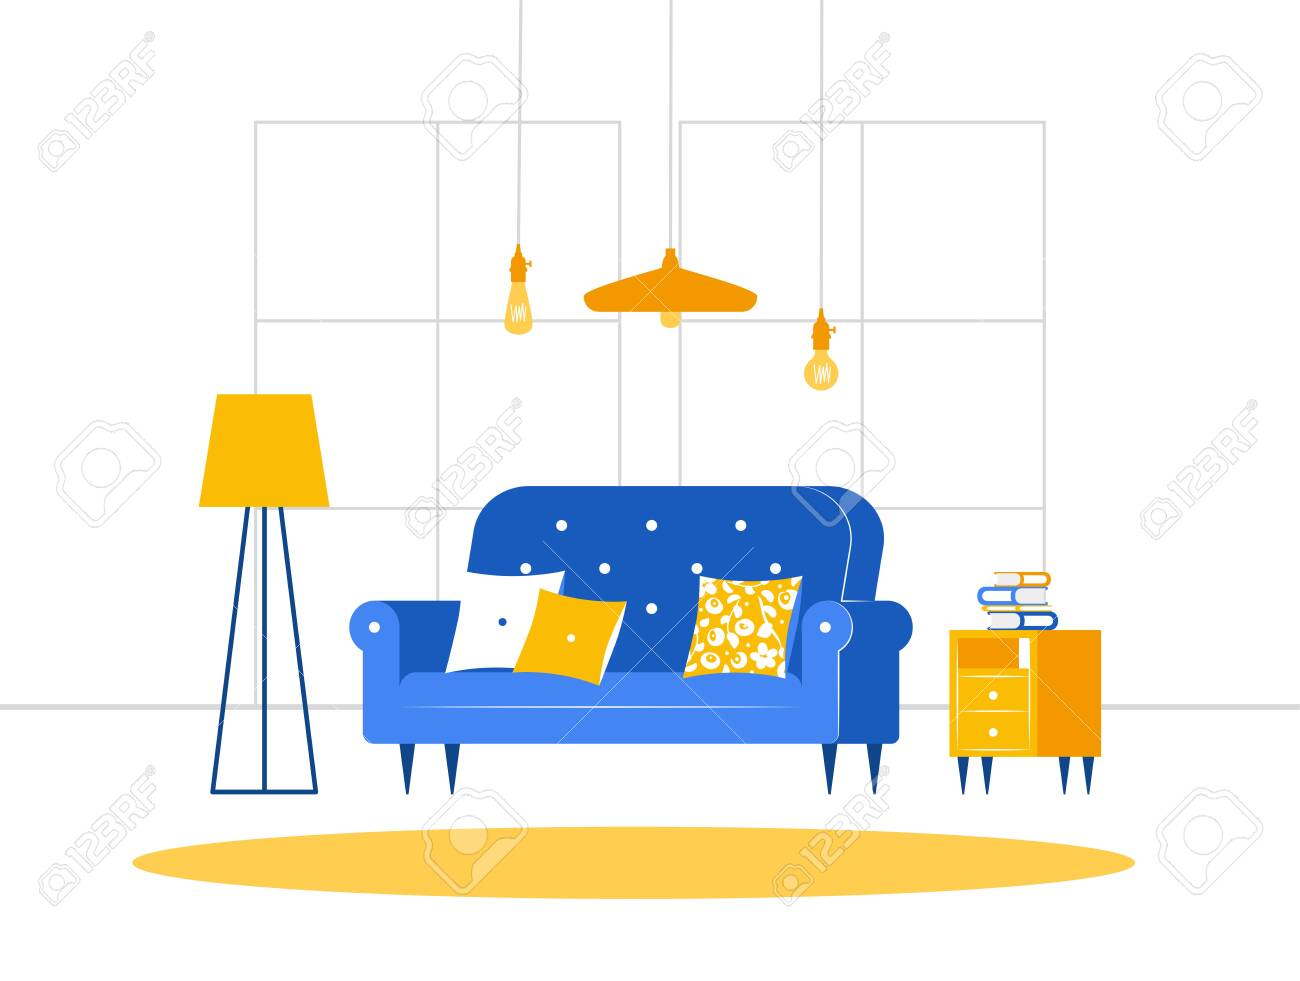 Brilliant Cozy Living Room With Sofa Bedside Table With Books Floor Lamp Unemploymentrelief Wooden Chair Designs For Living Room Unemploymentrelieforg